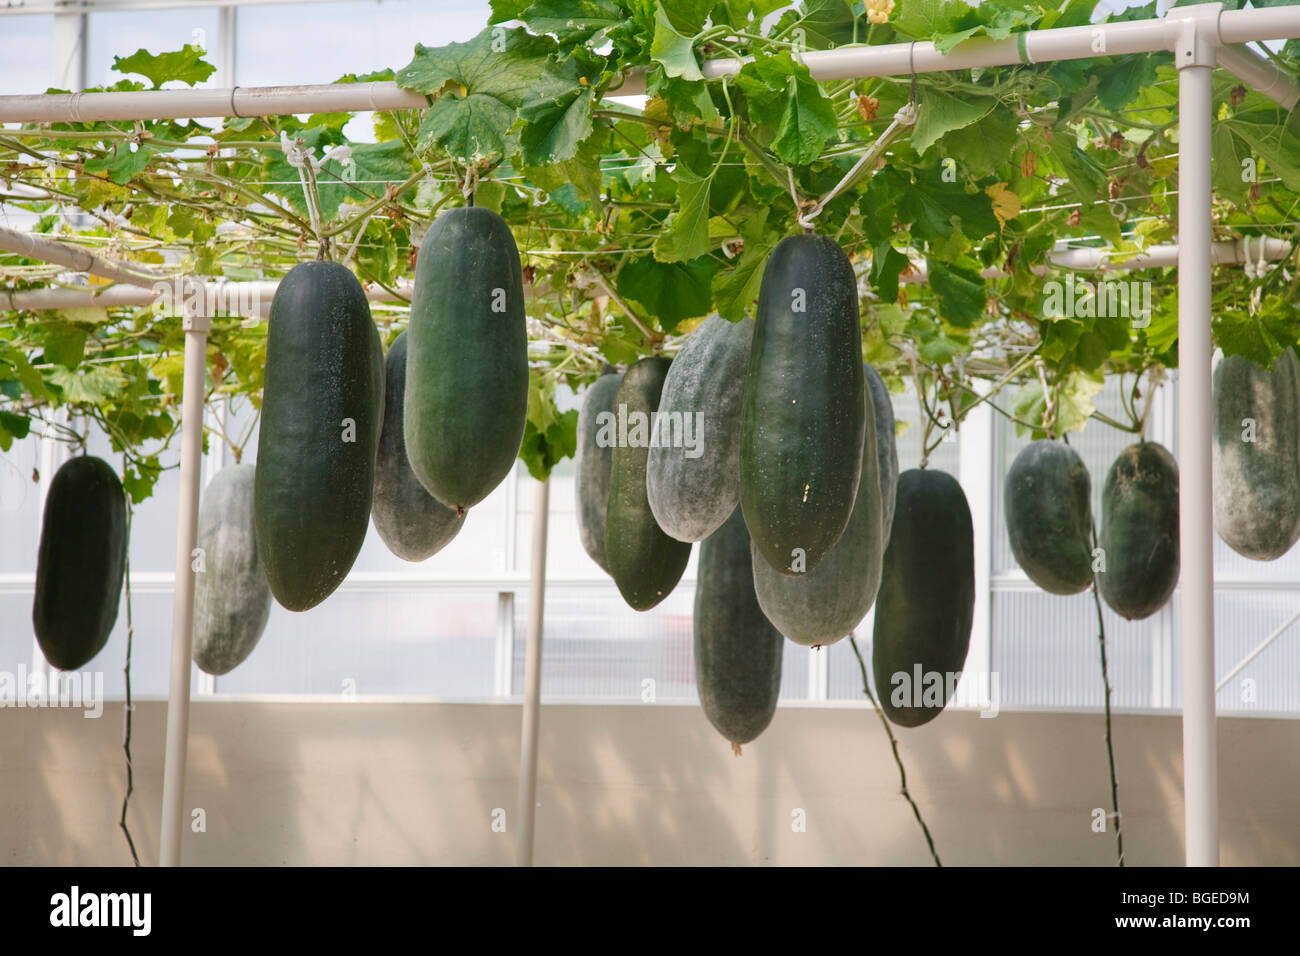 hydroponic system stock photos u0026 hydroponic system stock images